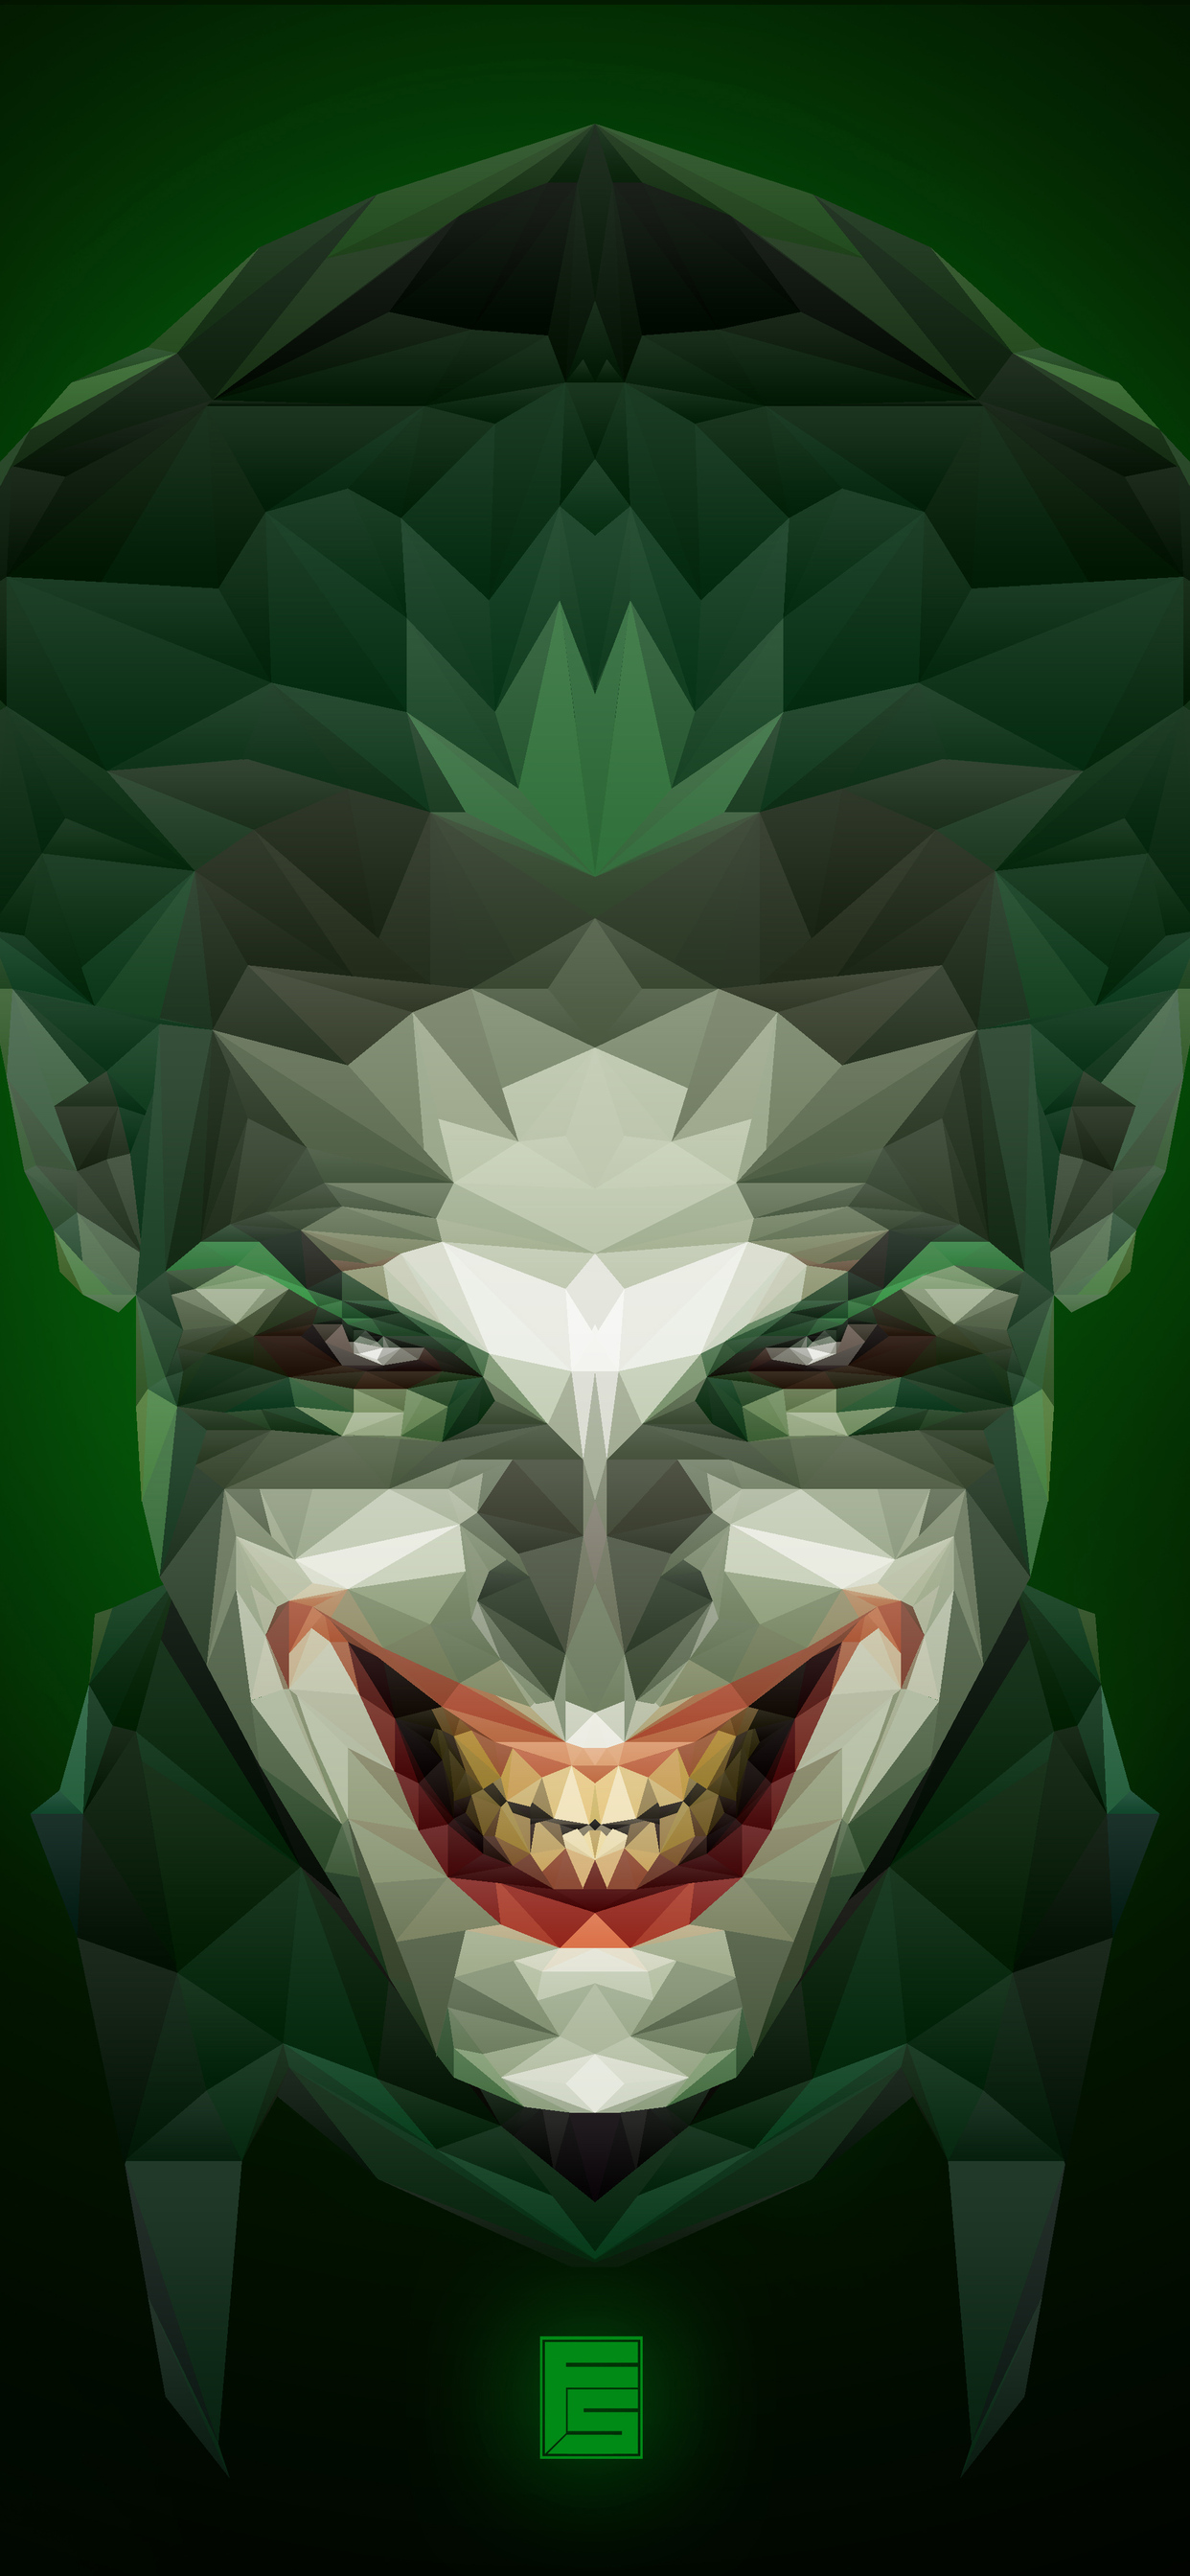 1242x2688 Joker Low Poly Art Iphone Xs Max Hd 4k Wallpapers Images